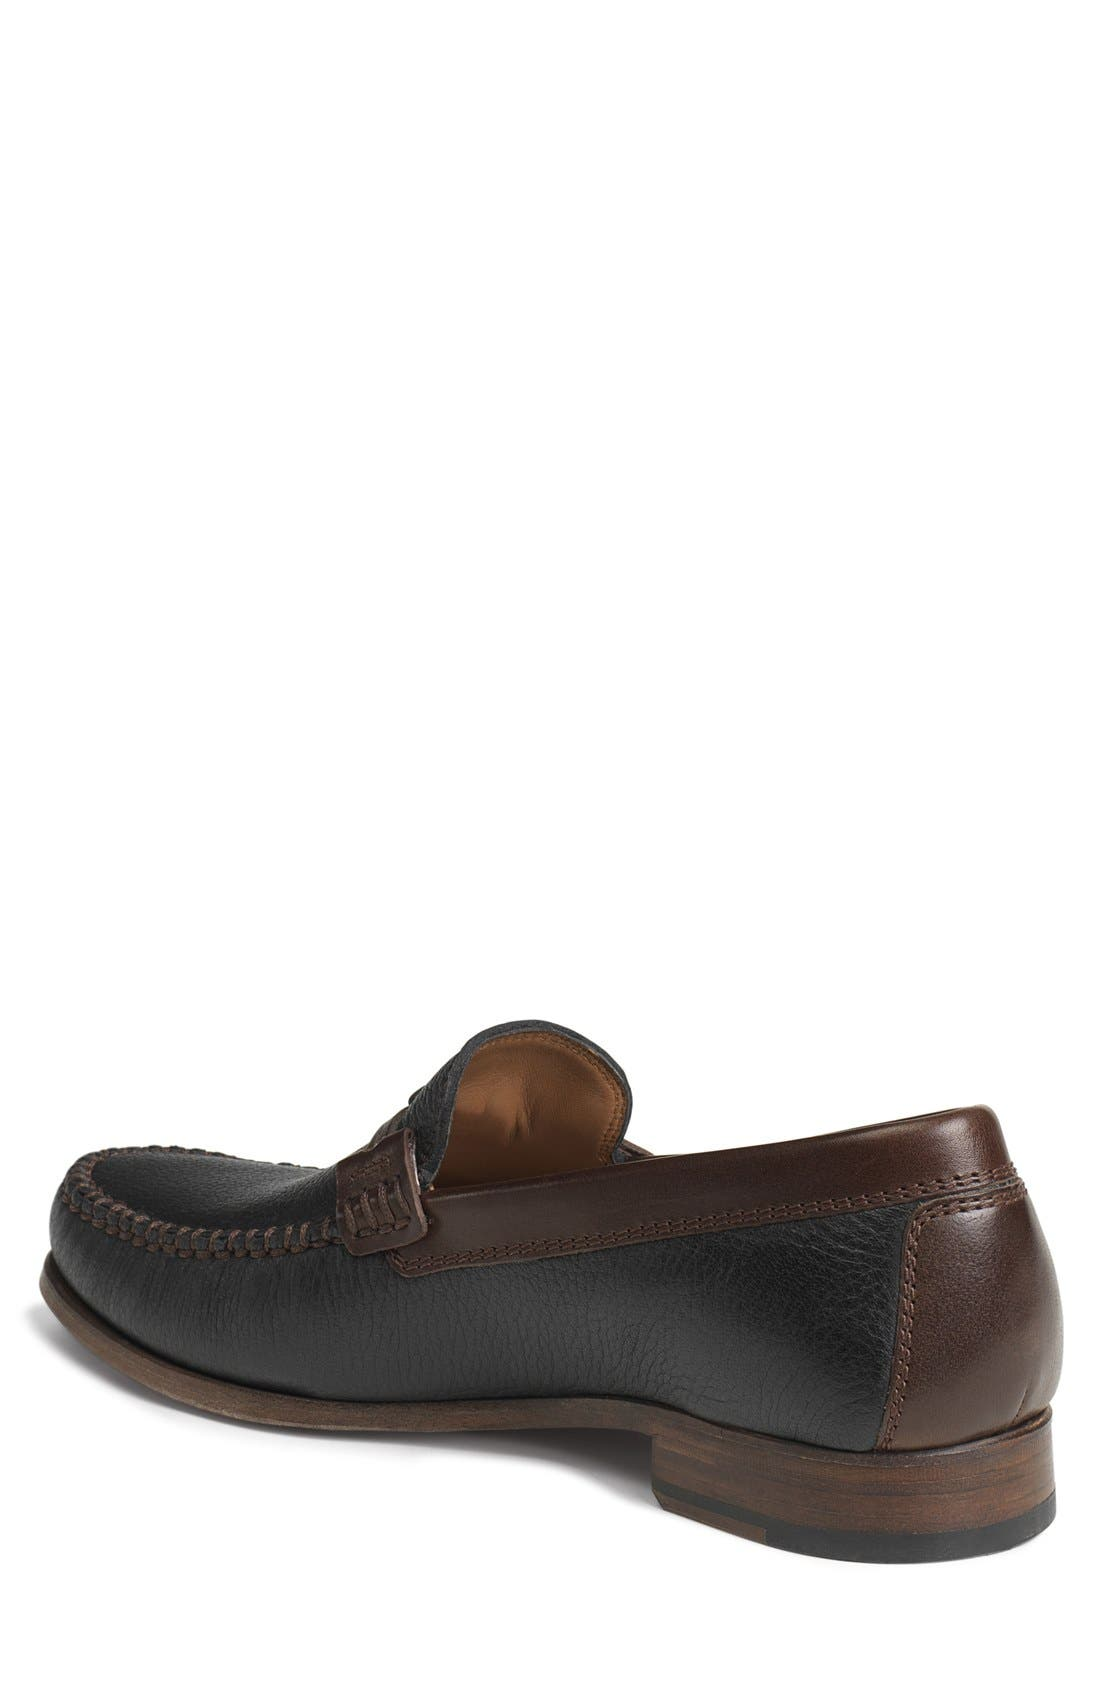 Alternate Image 2  - Trask 'Sawyer' Loafer (Men)